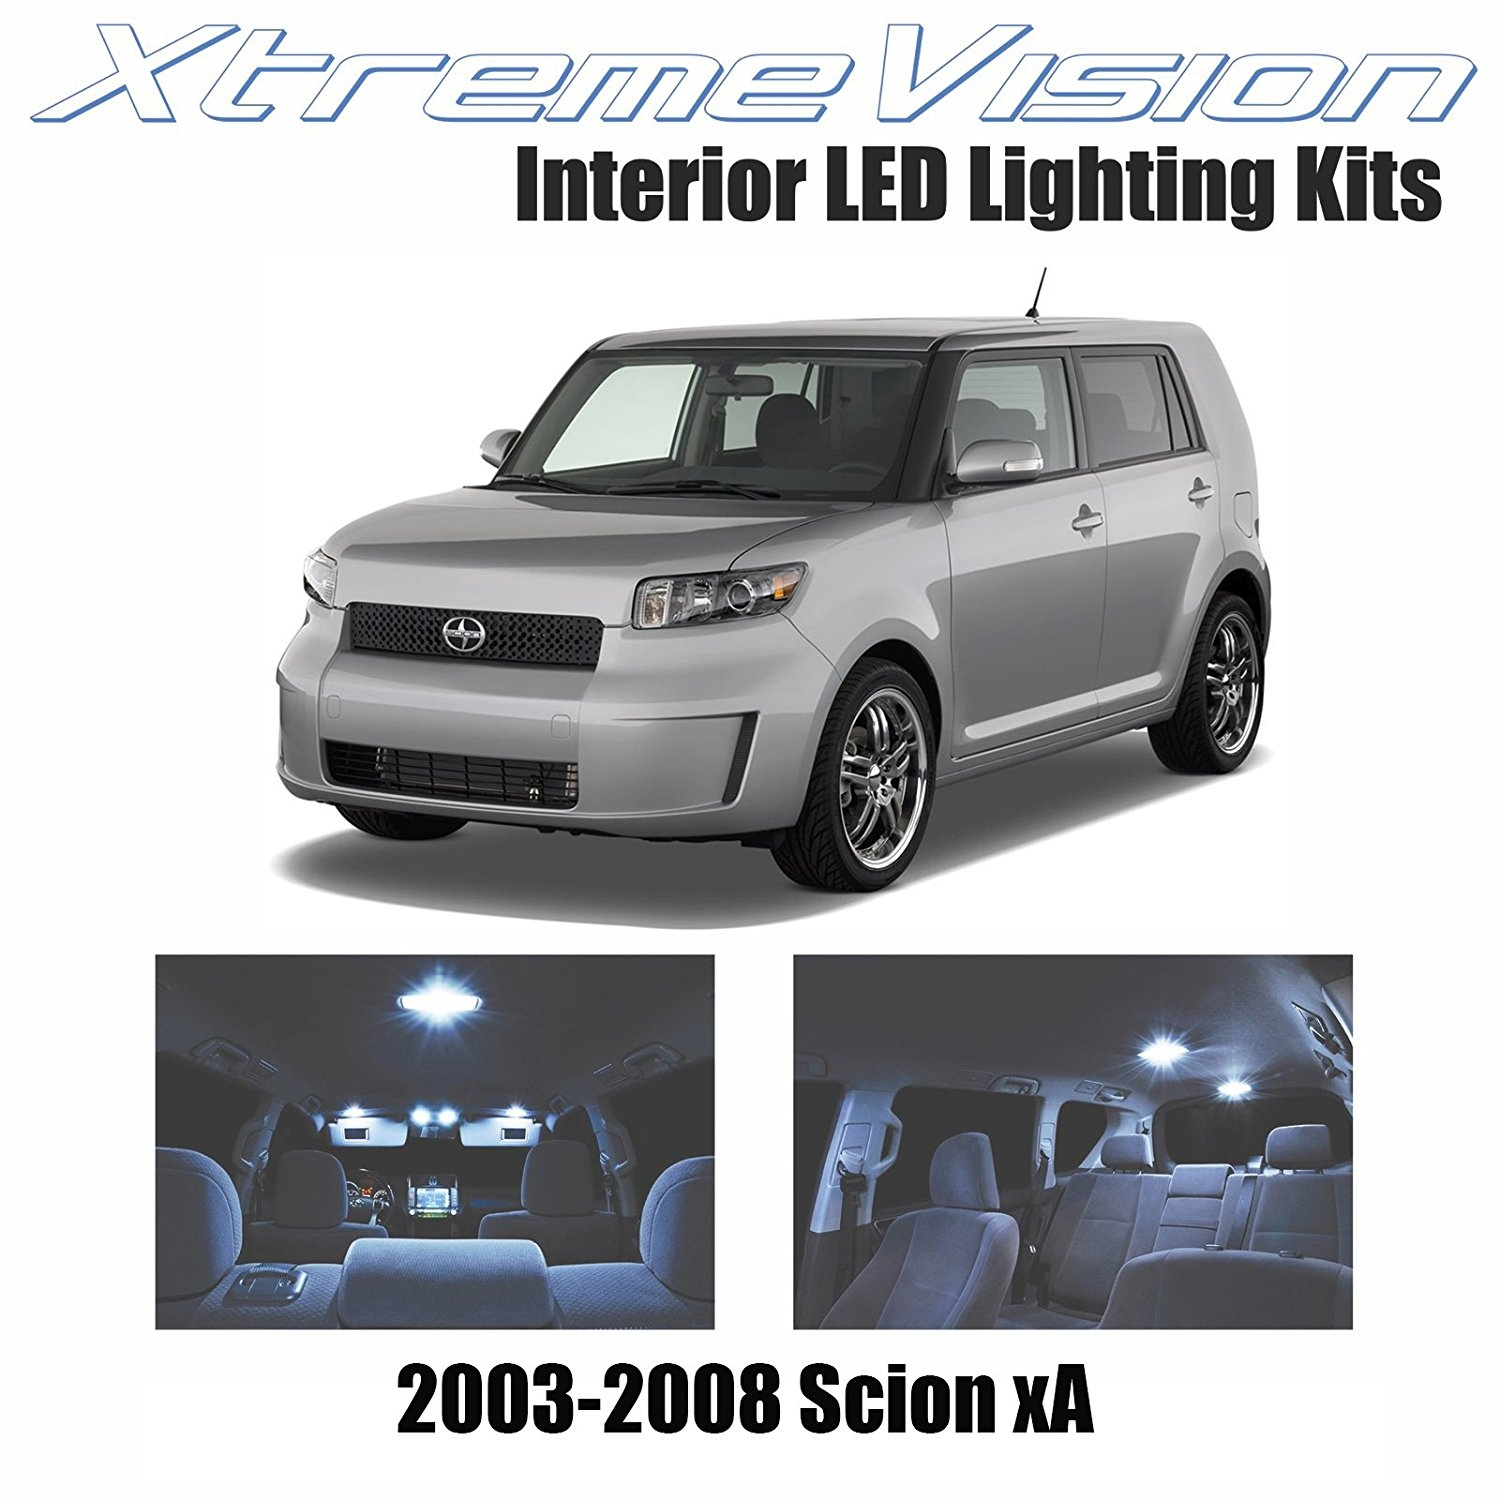 XtremeVision LED for Scion xA 2003-2008 (3 Pieces) Cool White Premium Interior LED Kit Package + Installation Tool